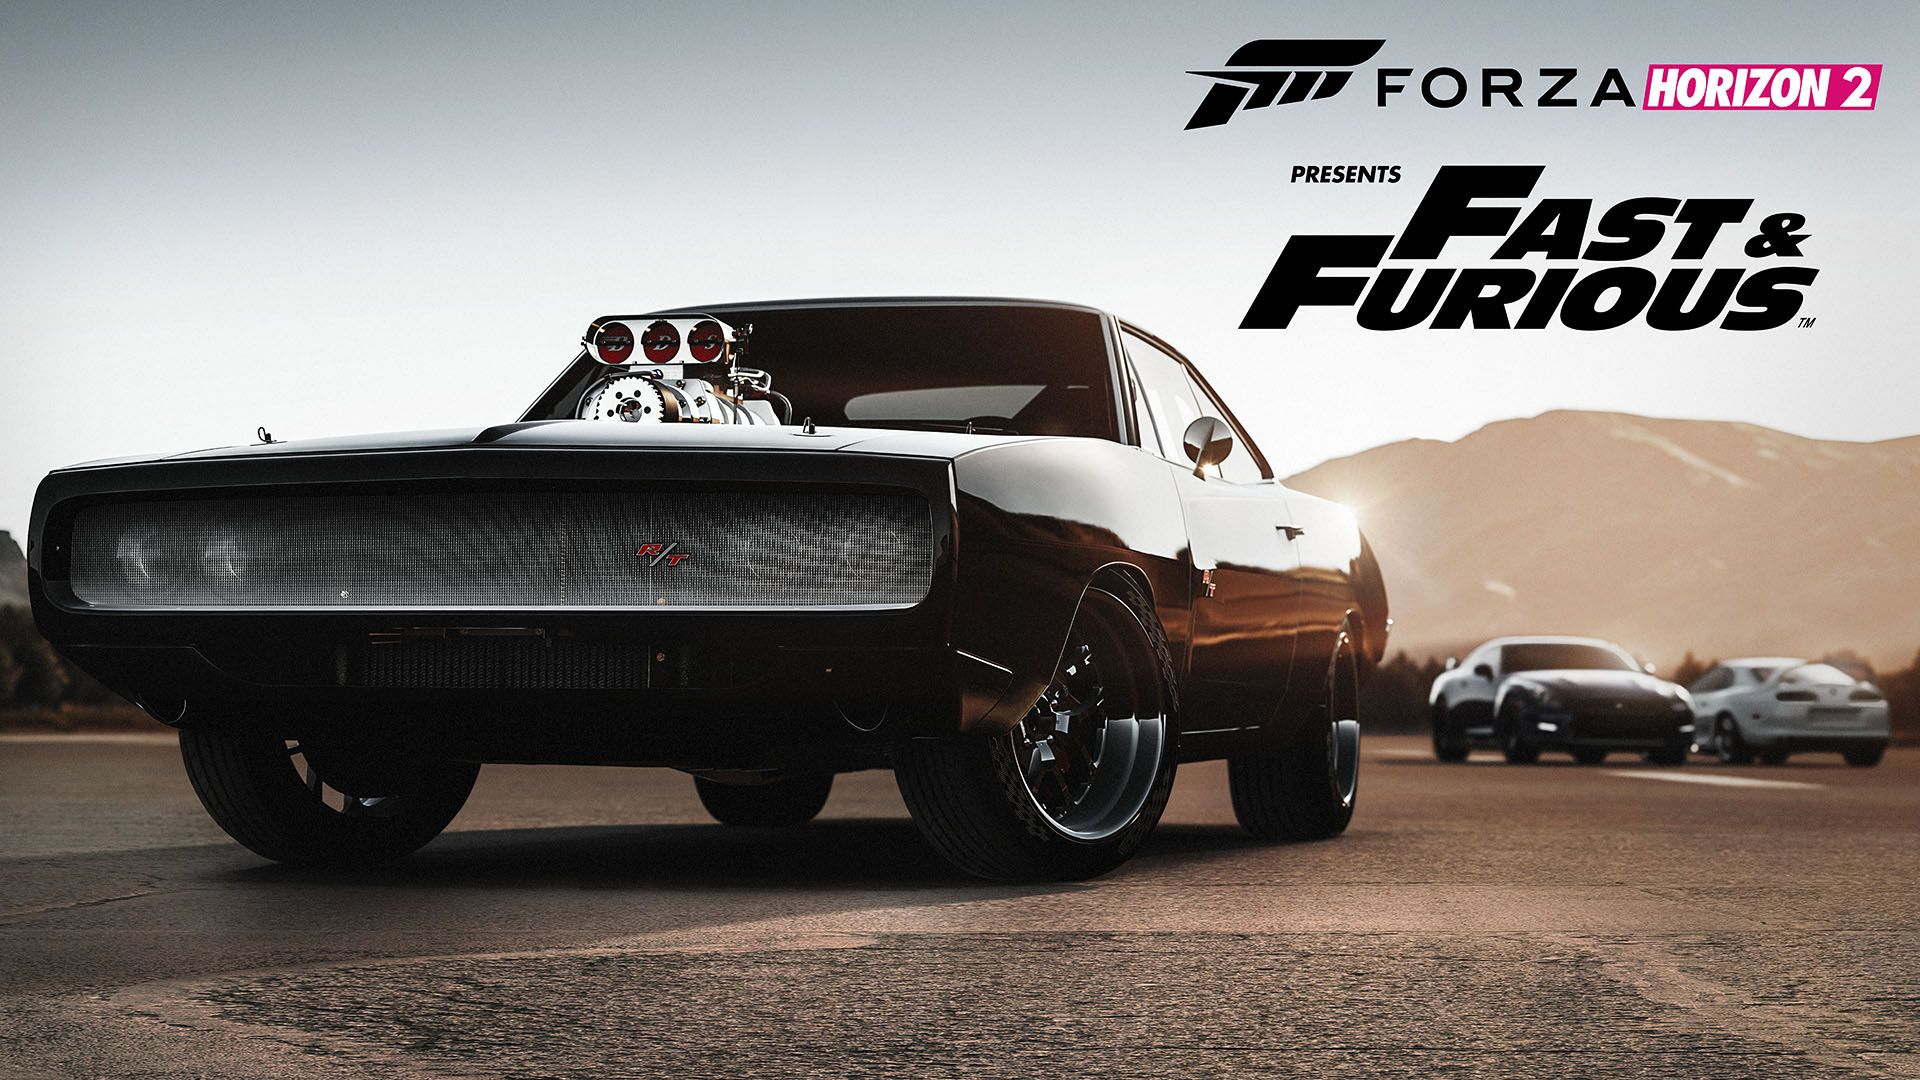 download fast and furious 7 cars live wallpaper apk 10 only in - Fast And Furious 7 Cars Wallpapers